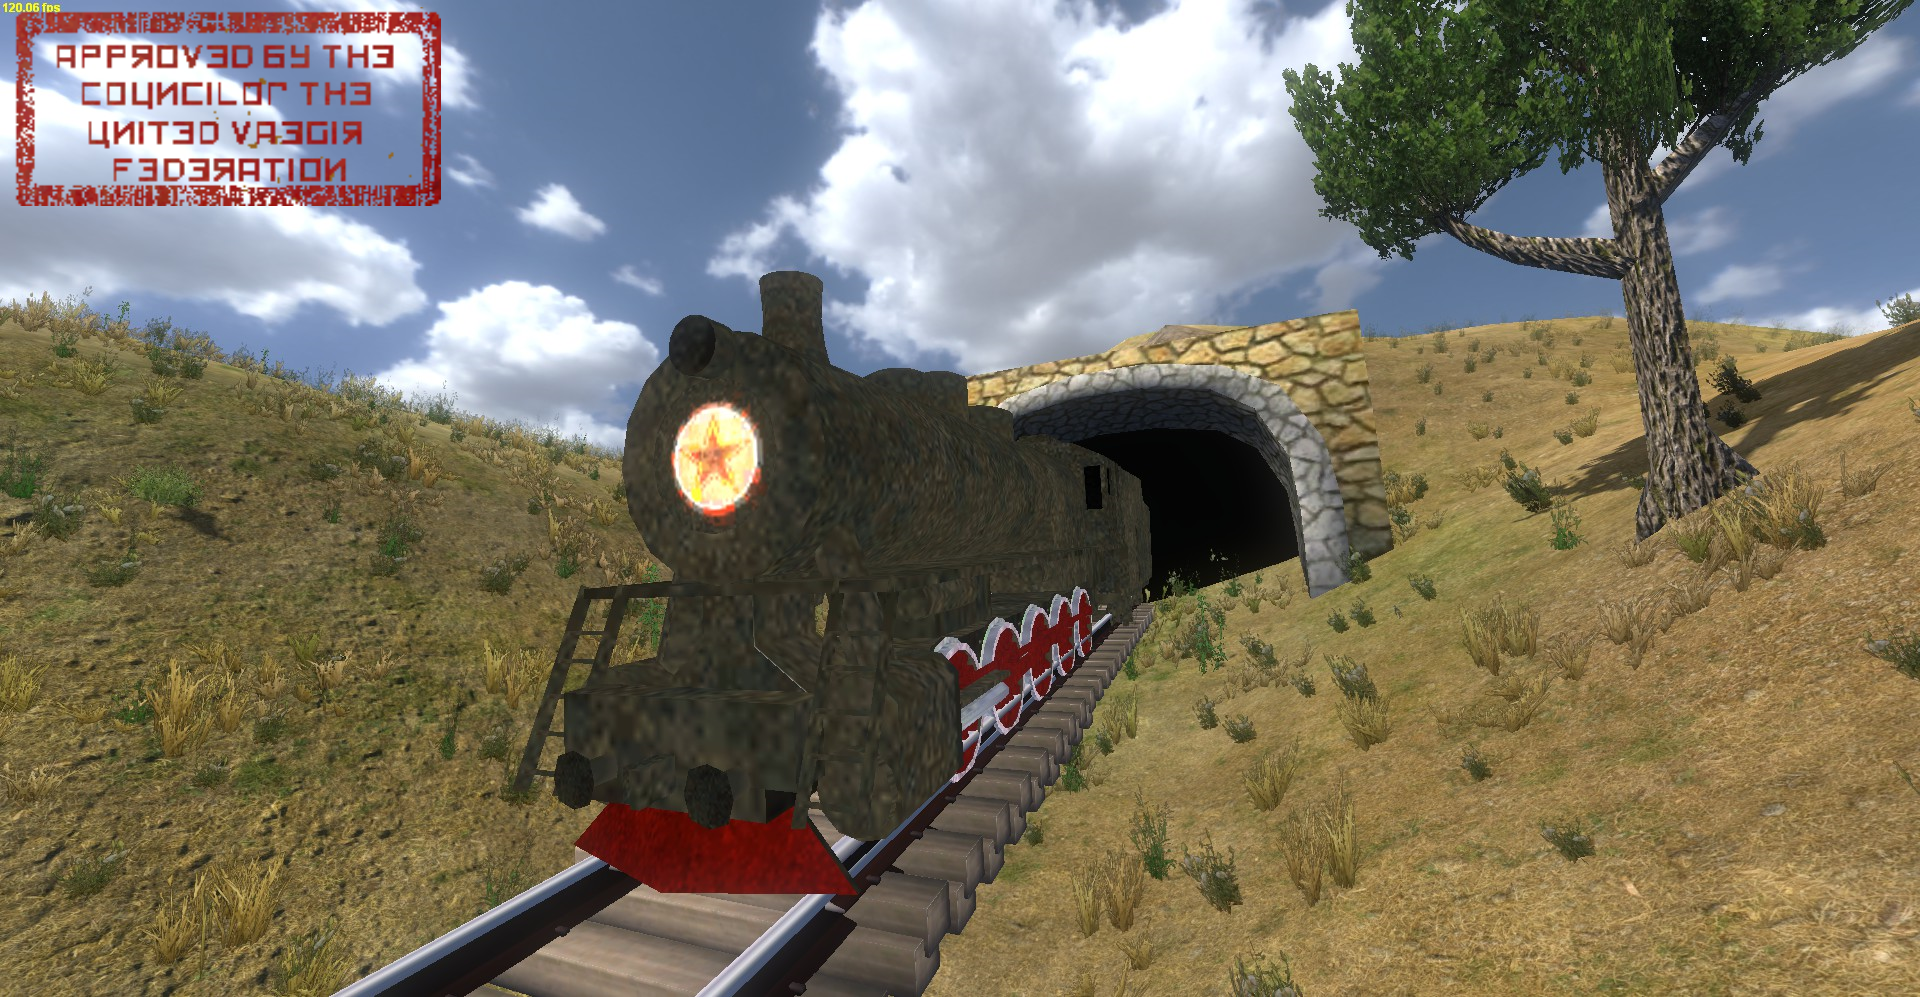 Choo Choo trains image - The Red Wars mod for Mount & Blade: Warband